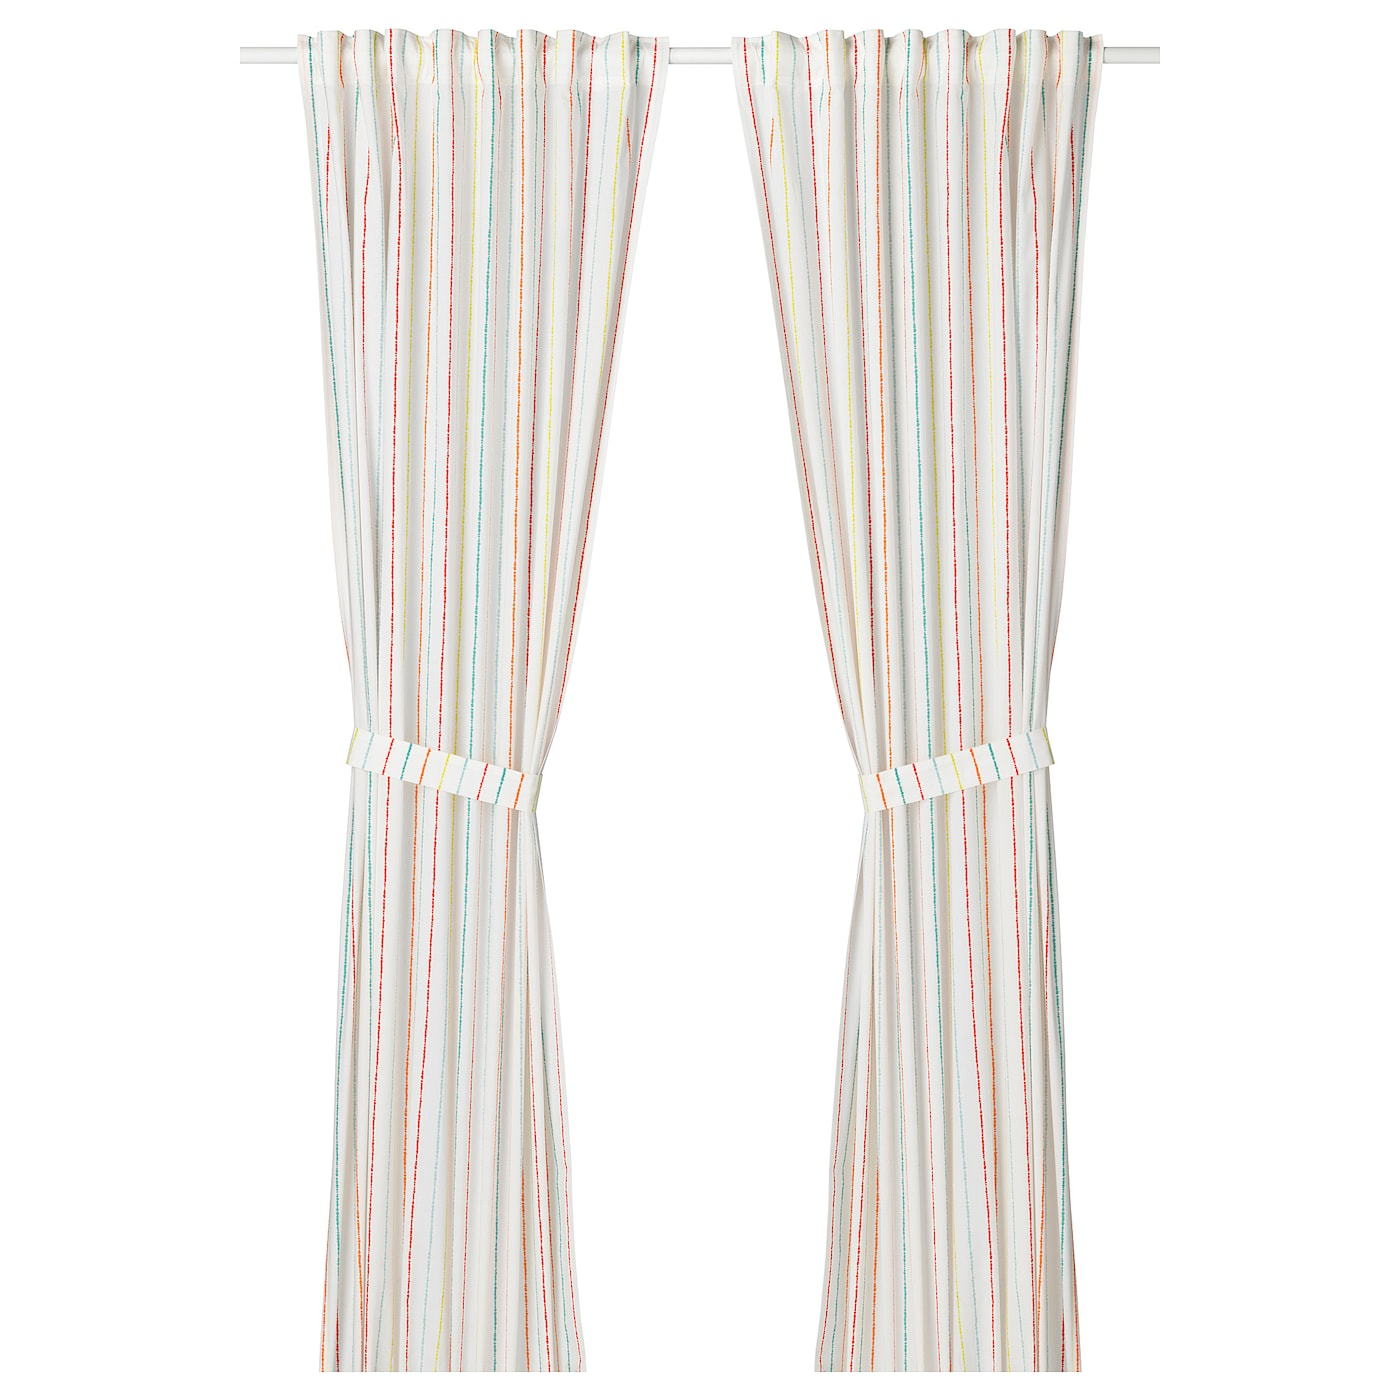 IKEA LATTJO curtains with tie-backs, 1 pair Easy to keep clean; machine wash hot (60°C).